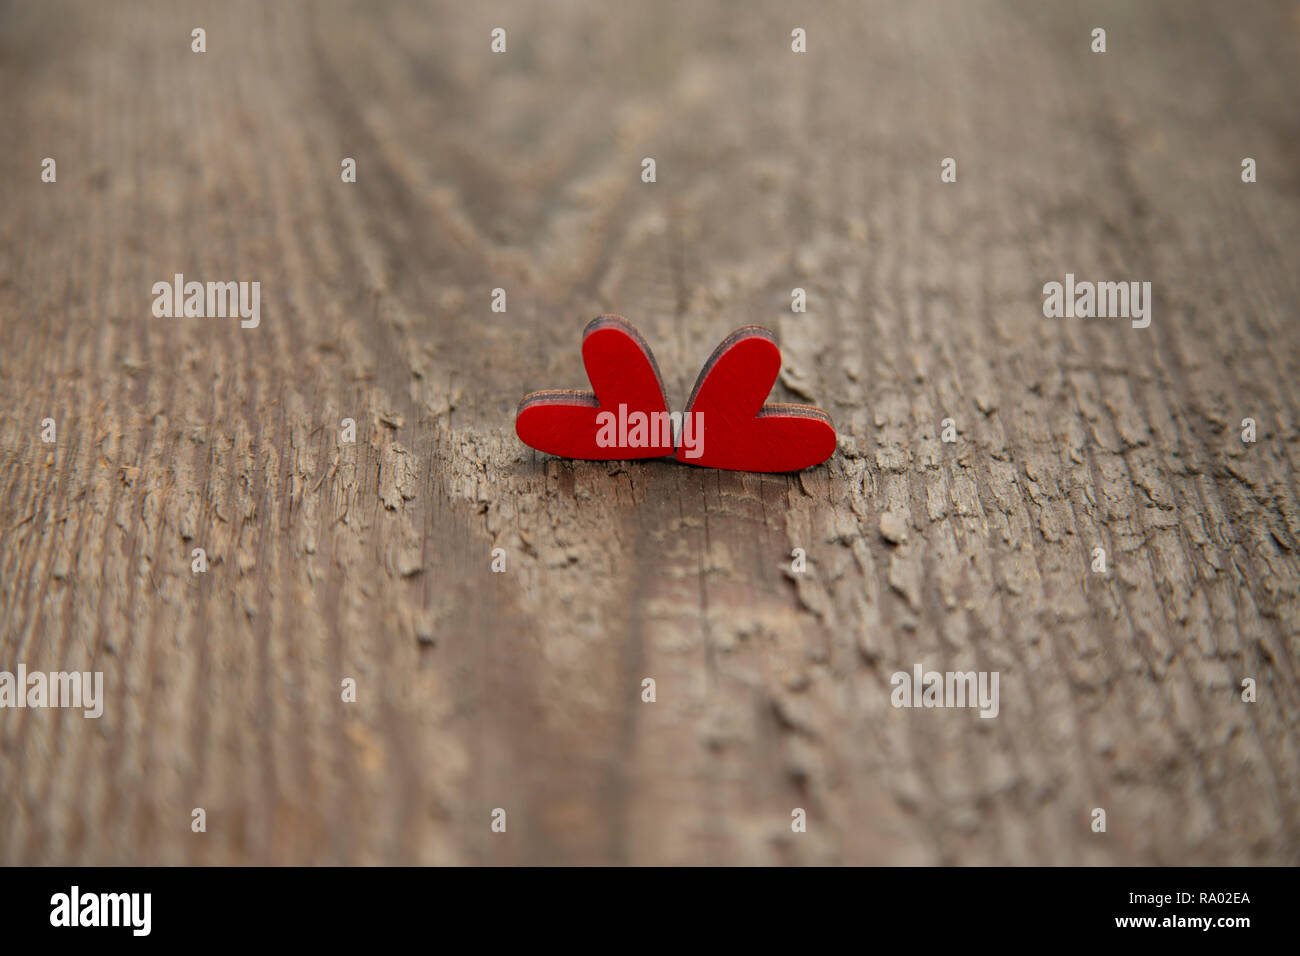 Two wooden red hearts on an old dry wooden board for Valentine's Day close-up. - Stock Image